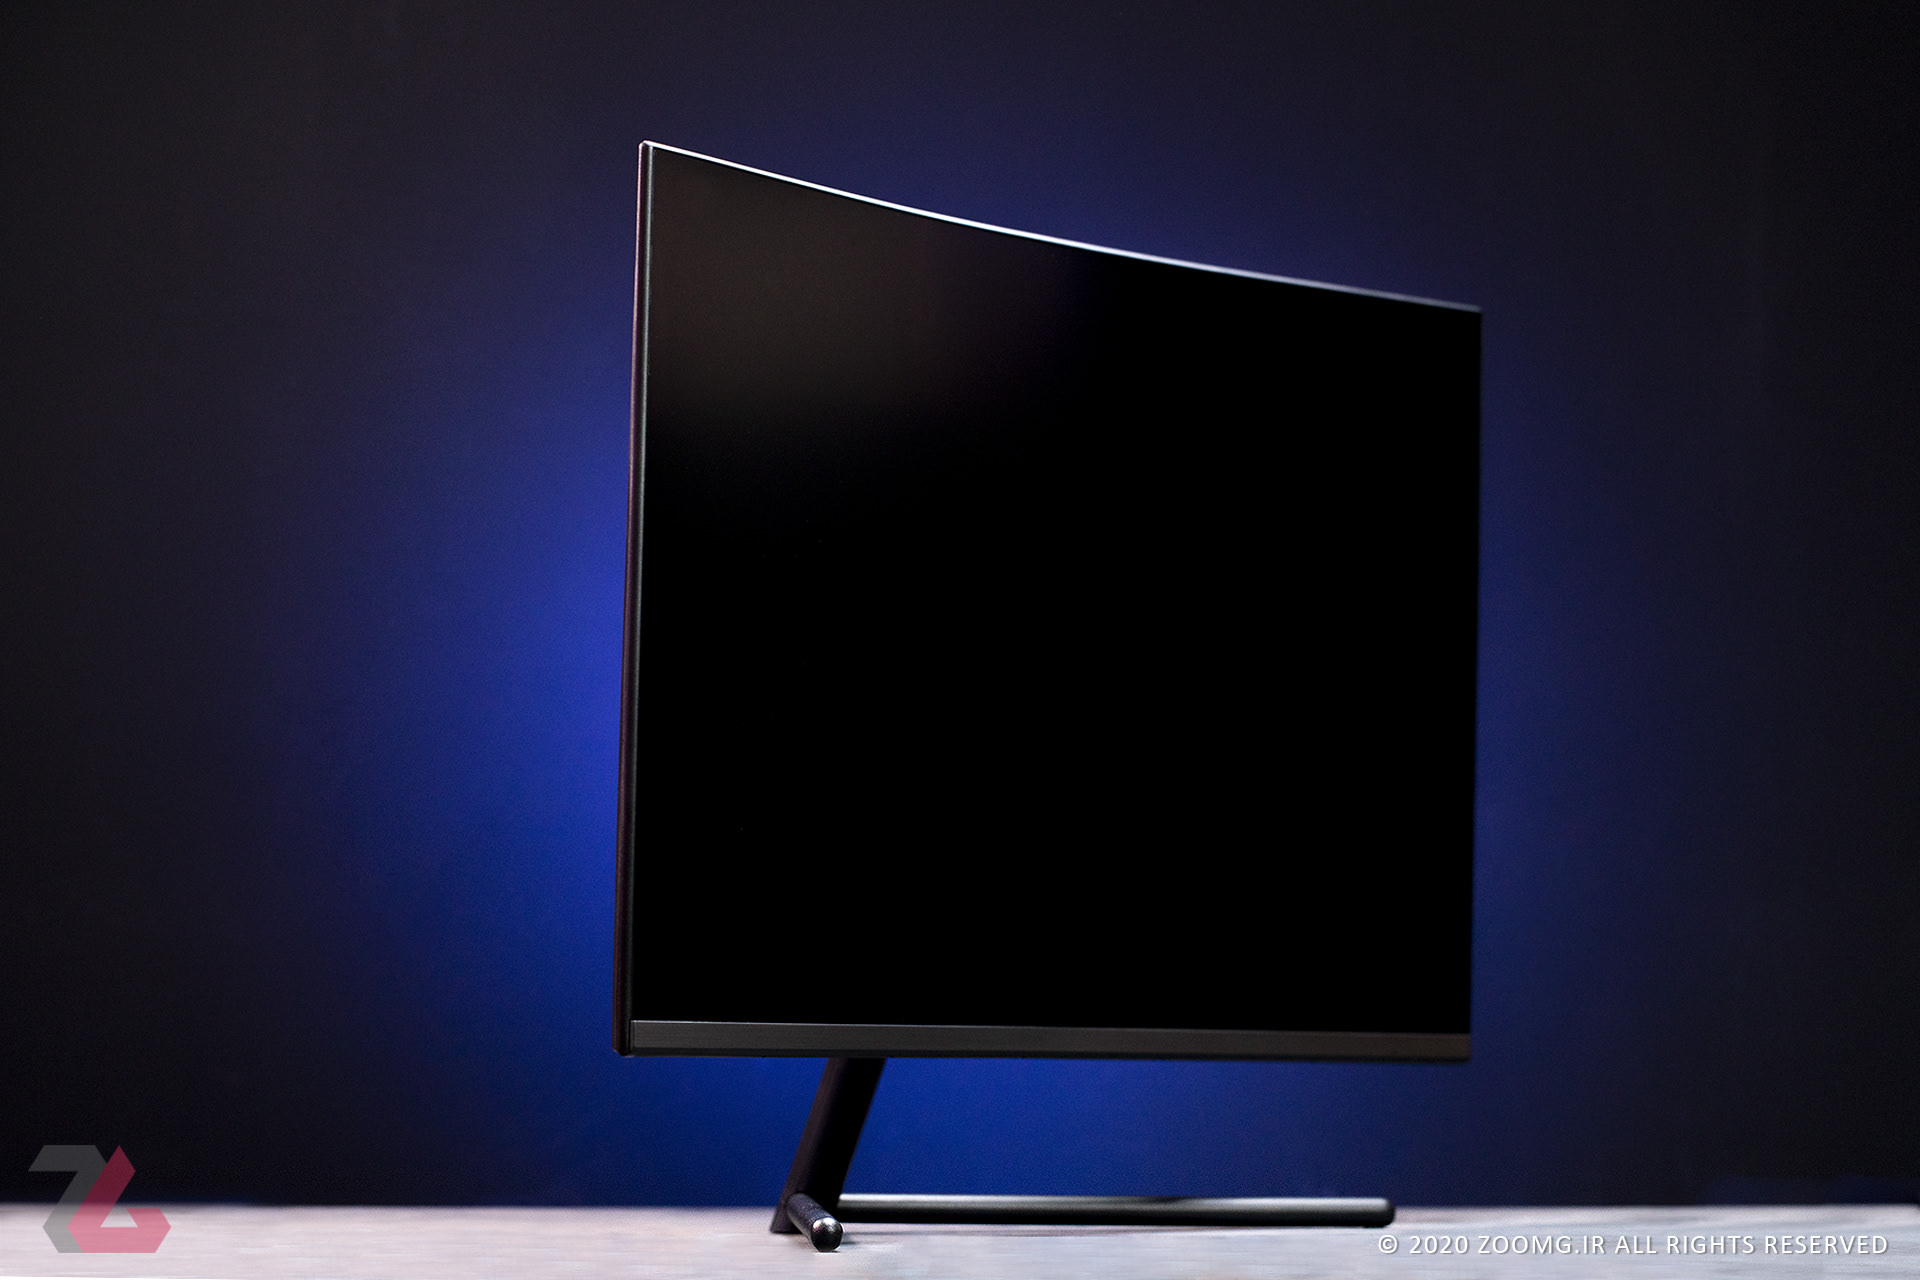 Image from the front view of the Samsung UR59C monitor